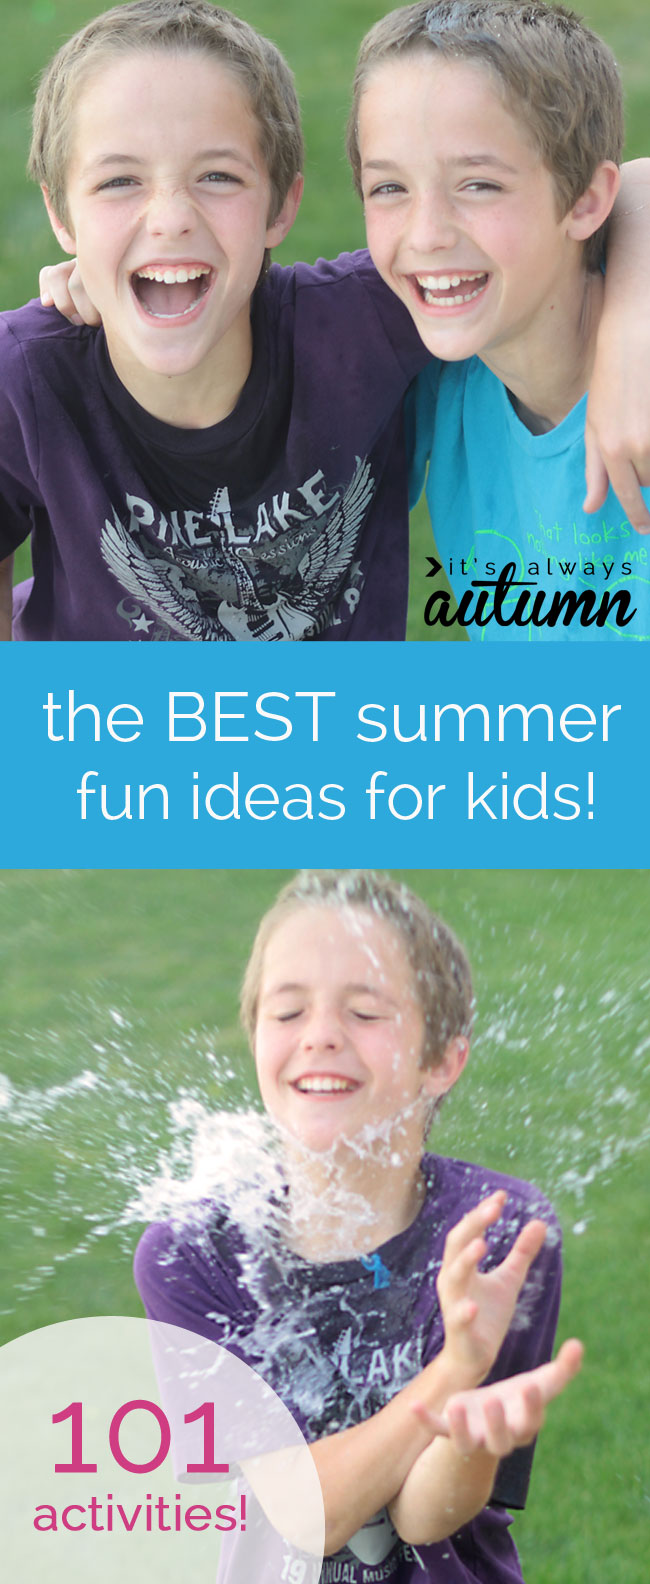 beat summer boredom | 101 fun, easy activities kids can do at home ...